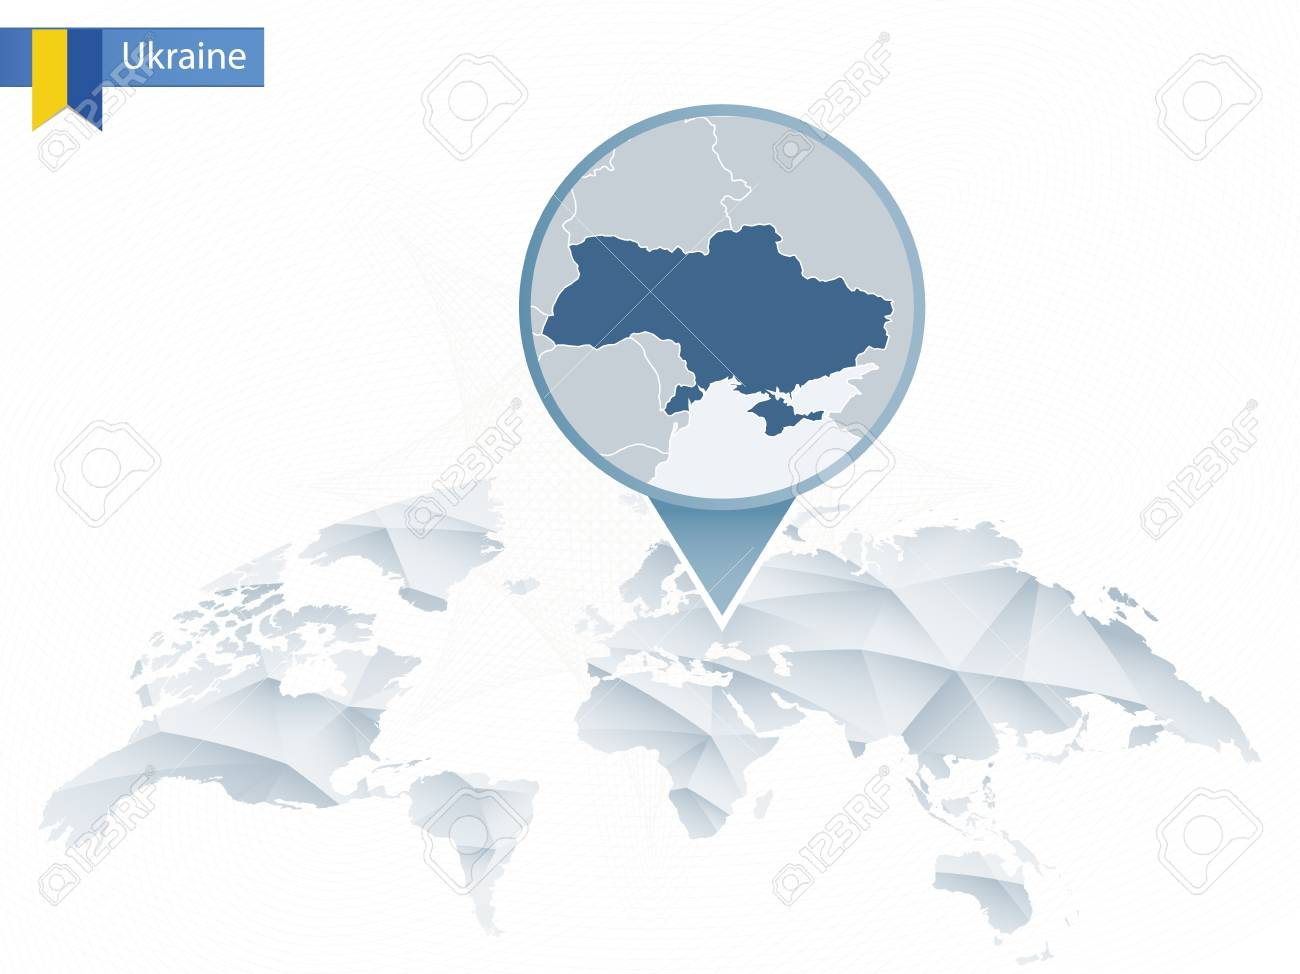 Abstract Rounded World Map With Pinned Detailed Ukraine Map